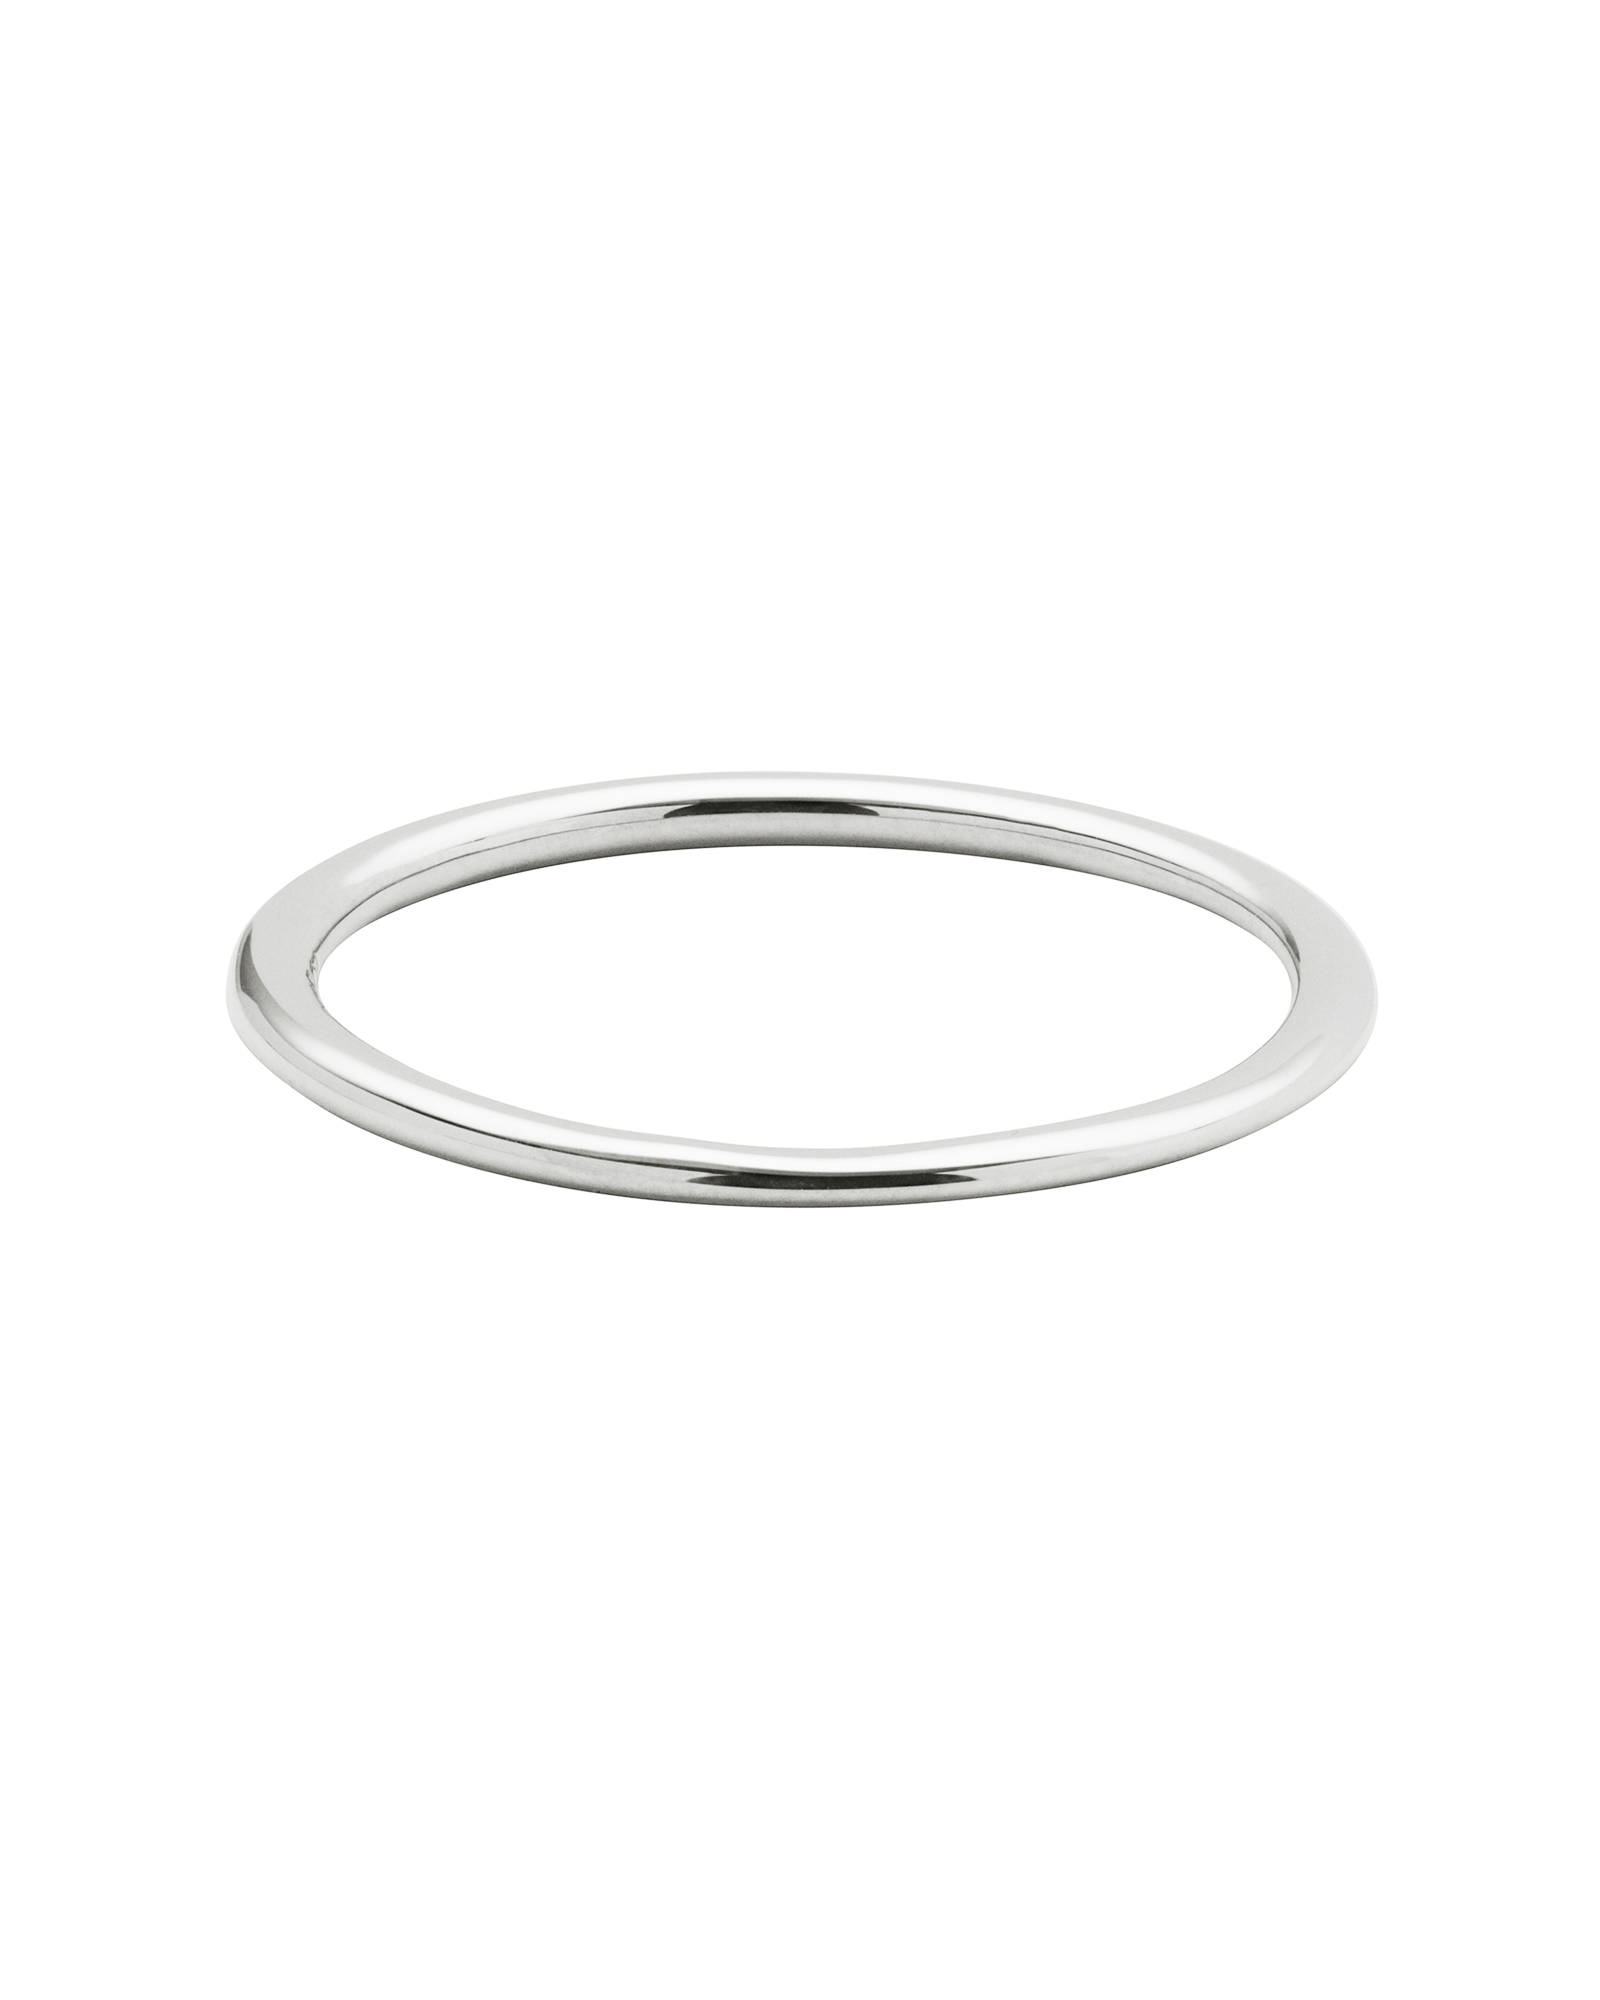 Haley 14K Band Ring